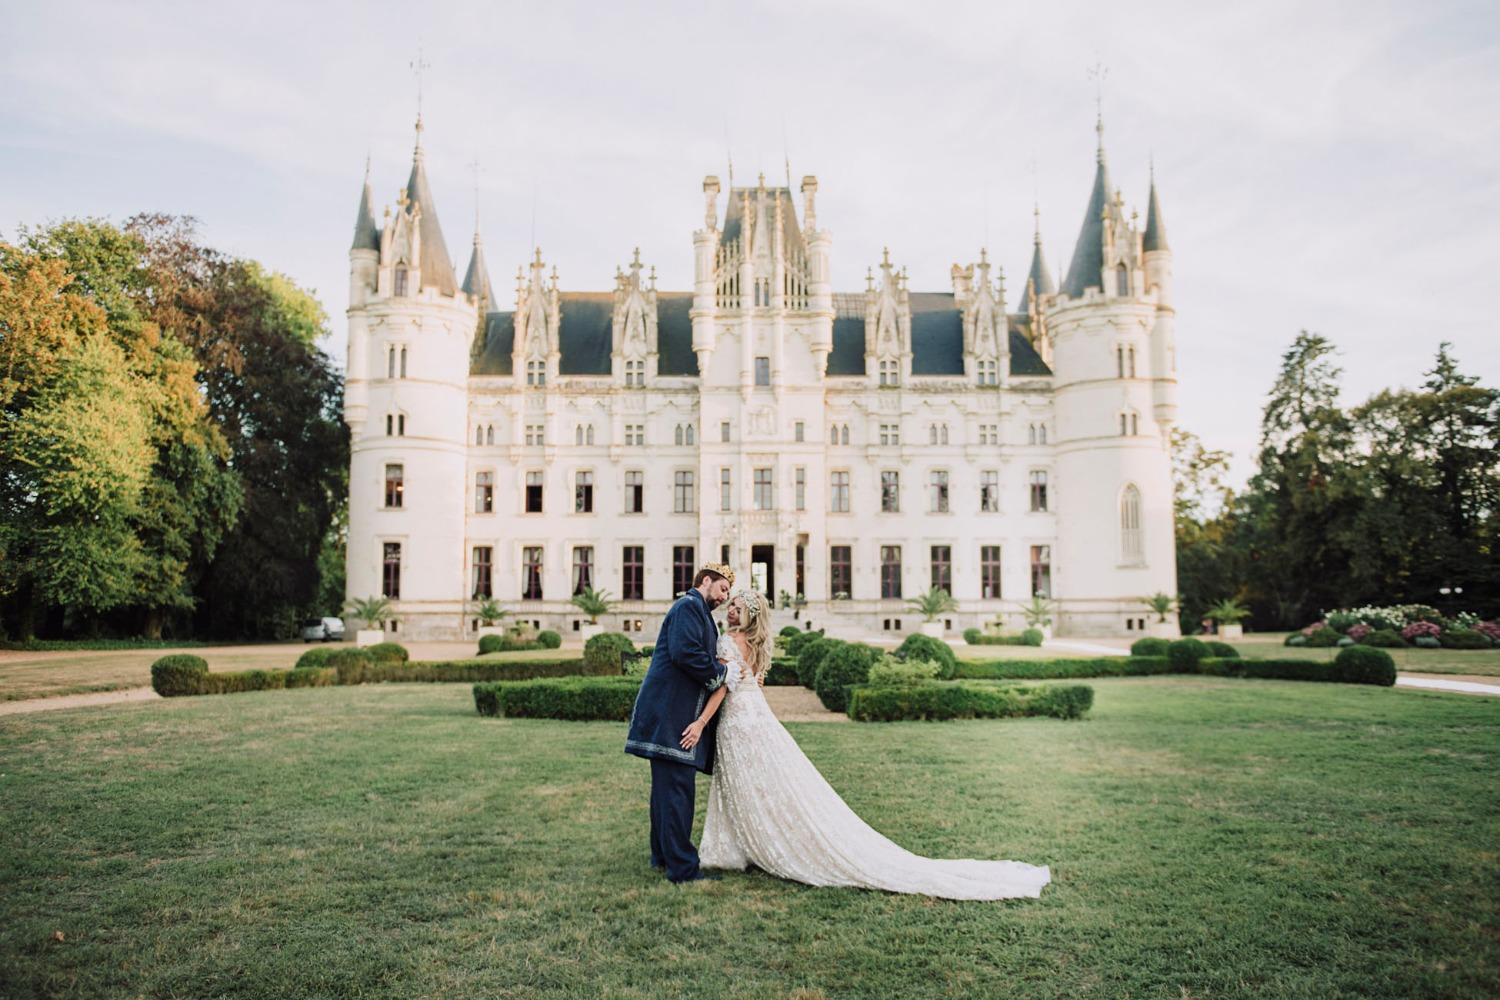 Dreamy castle wedding